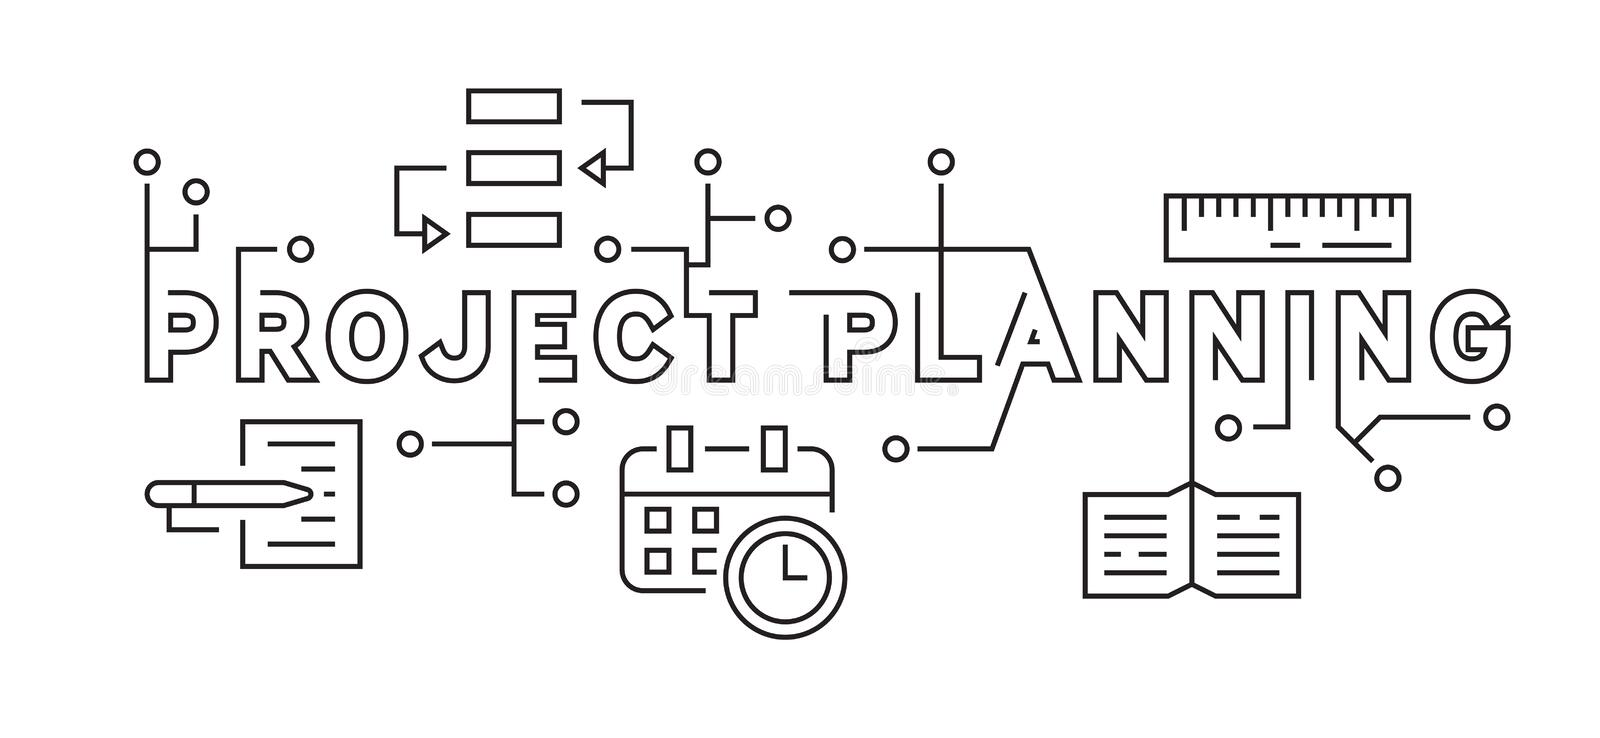 Project Planning and Business Strategy Concept. Black and White Flat Line Design Ilustration. Youthful Doodle Style Vector. the sp. The spirit of young employees stock illustration